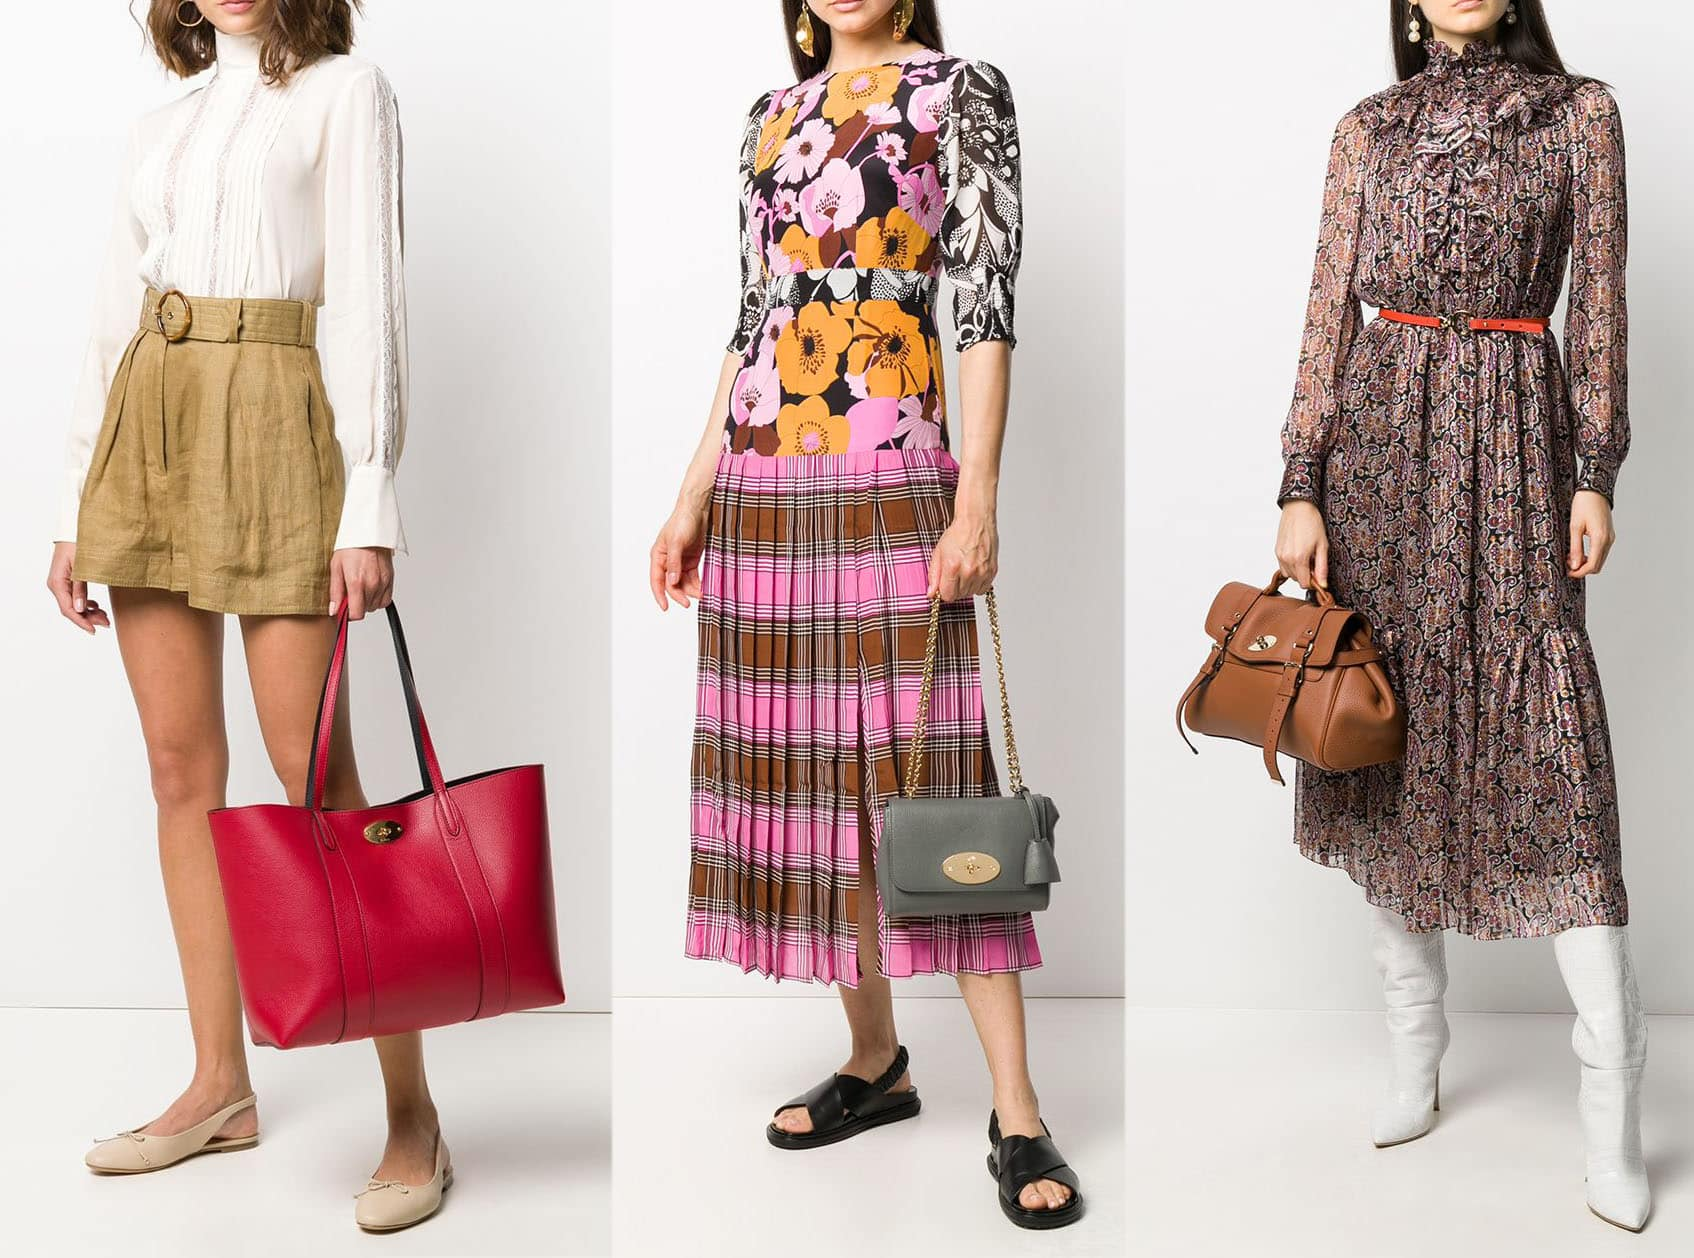 Mulberry's famous handbag styles include the Bayswater, Lily, and Alexa